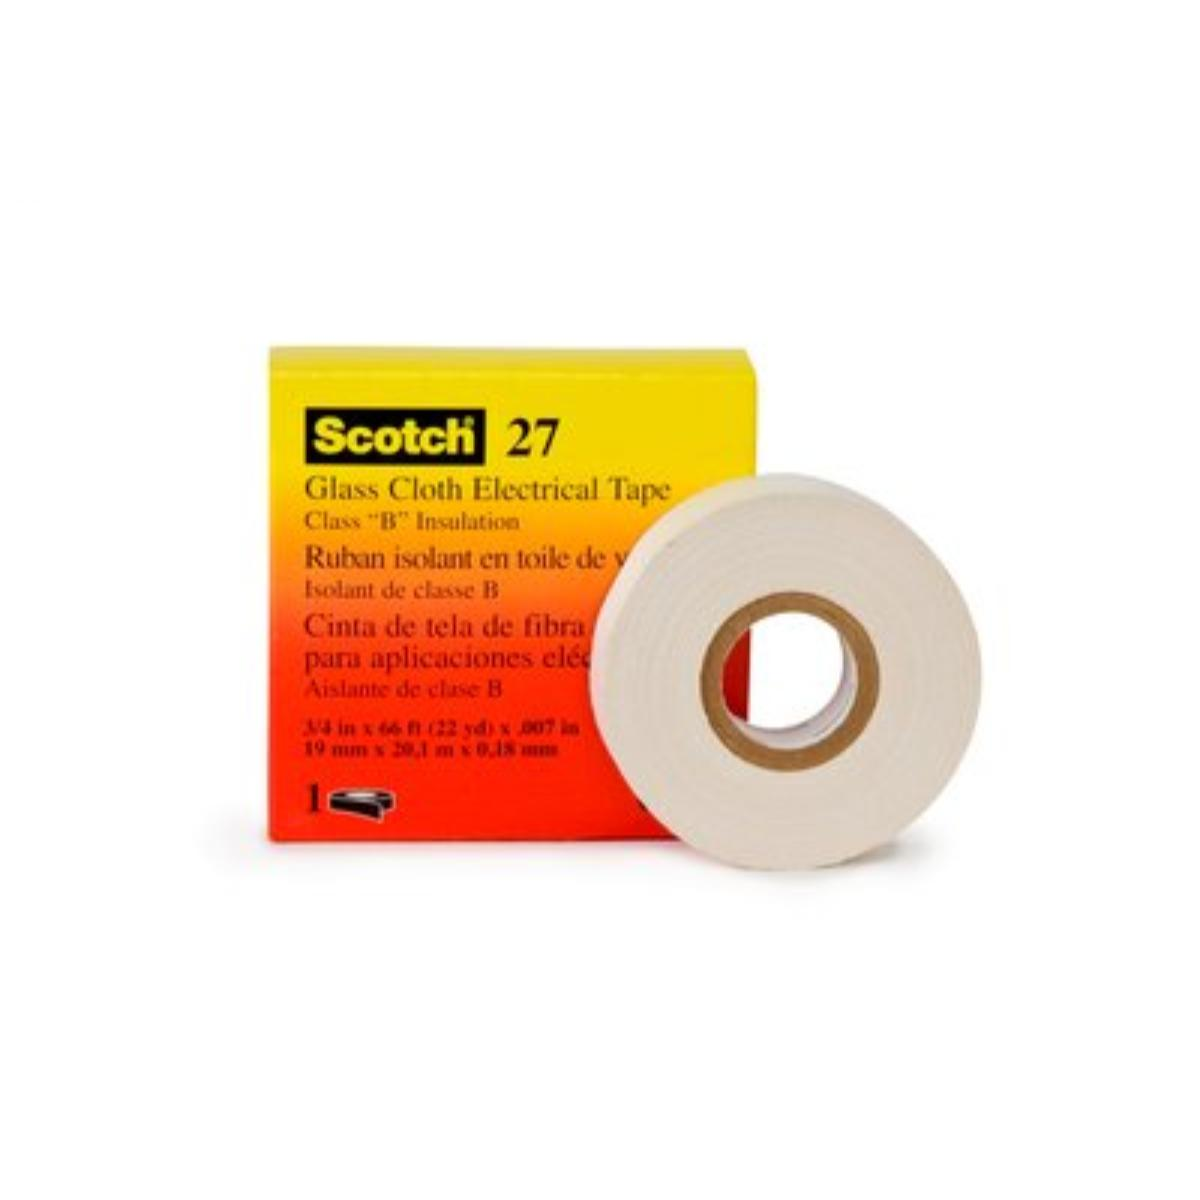 3M(TM) Glass Cloth Electrical Tape 27, 3/4 in x 66 ft